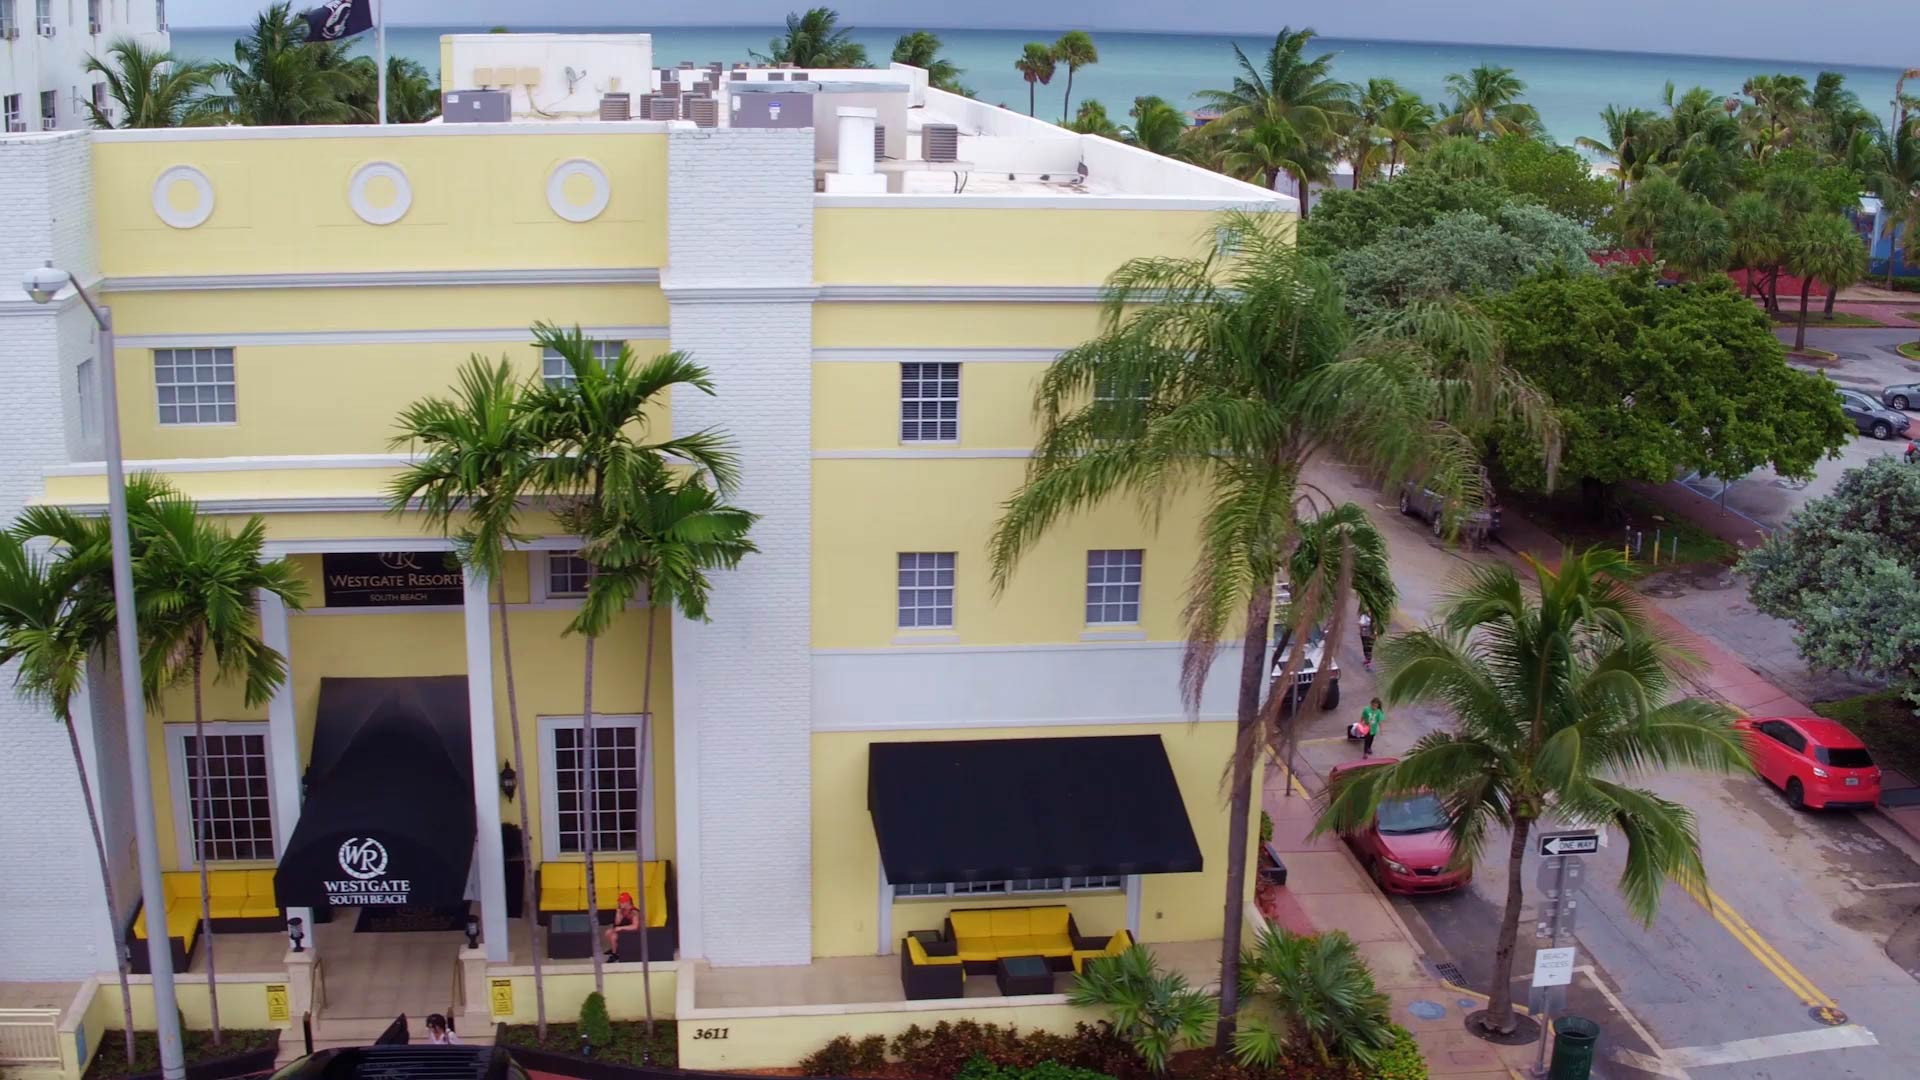 A beachfront resort hotel, Westgate South Beach Resort features spacious one- and two-bedroom villas, as well as abundant onsite amenities such as beach access, heated outdoor pool, private cabanas, volleyball court, playground and fire pits.